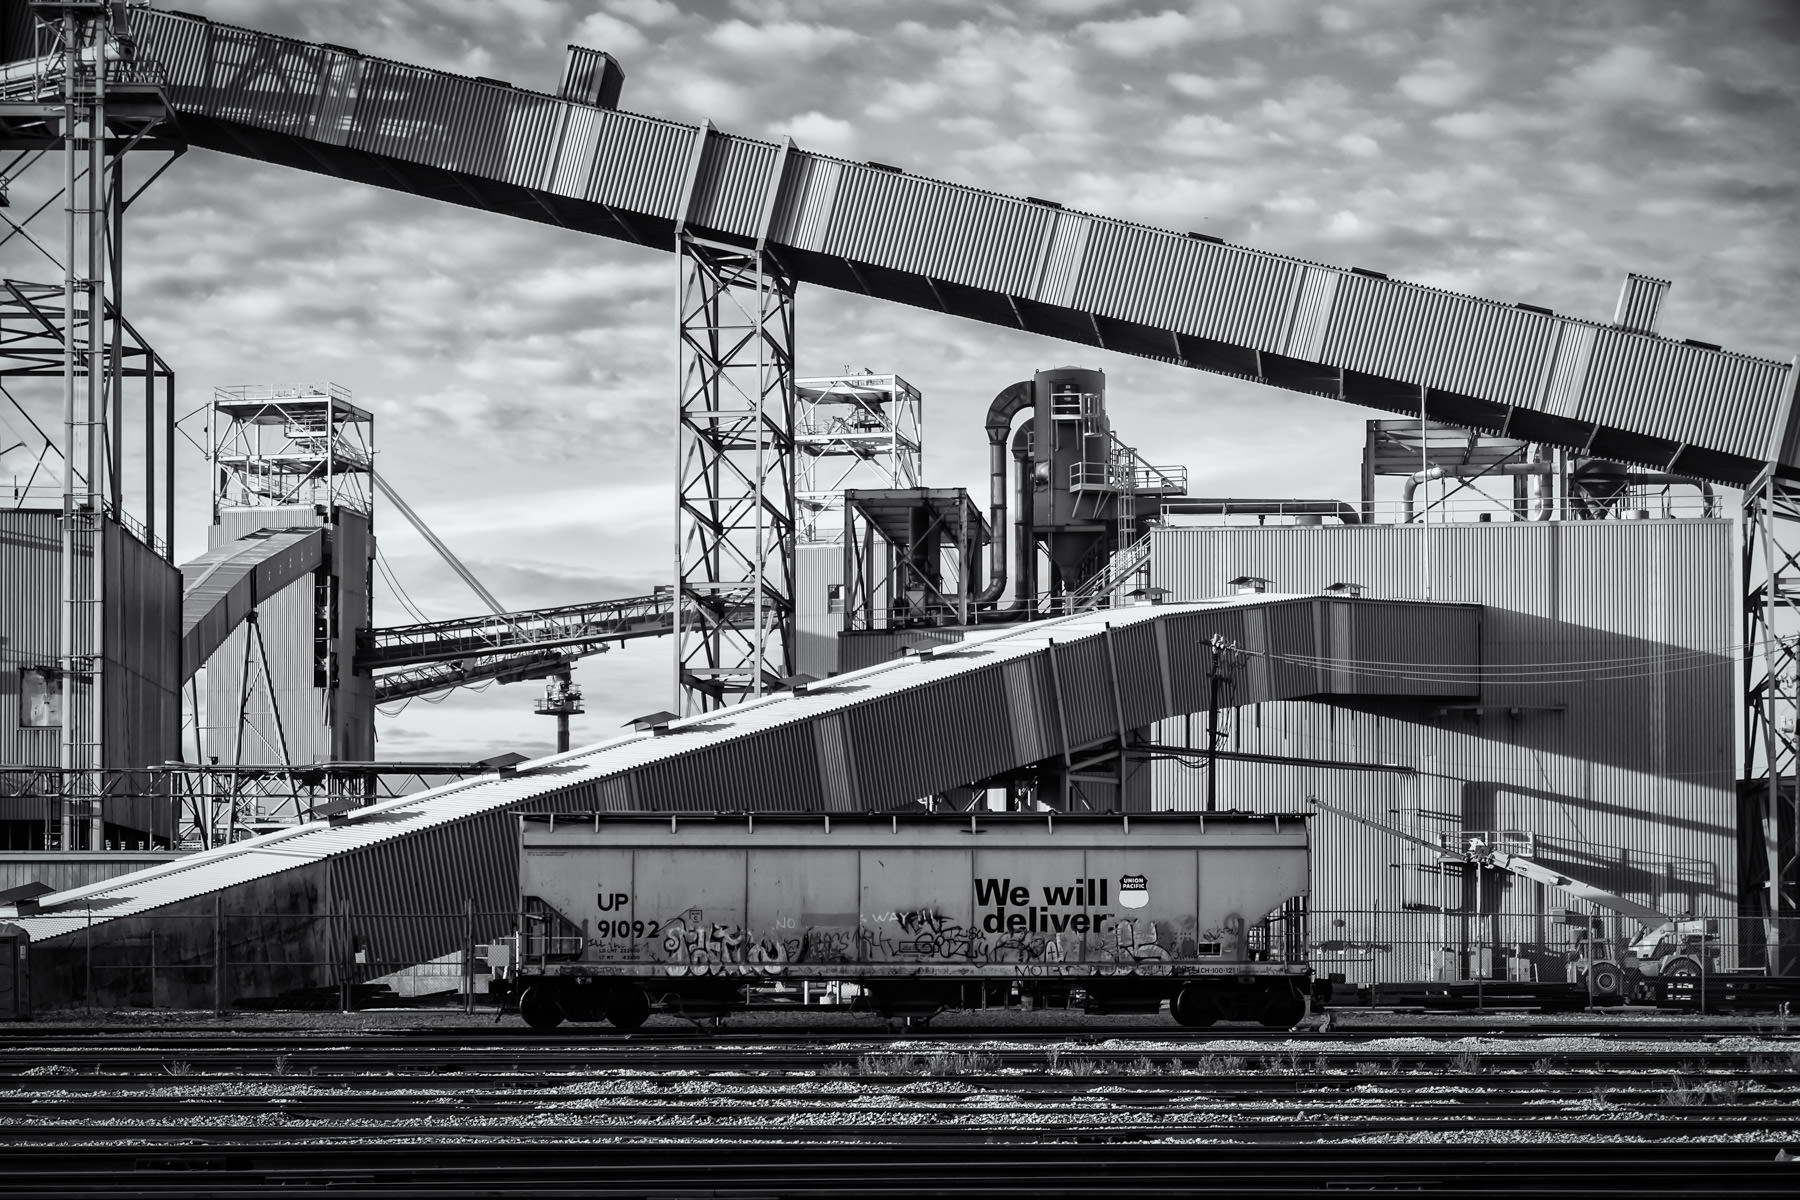 A Union Pacific hopper car is dwarfed by massive industrial equipment at the ADM Grain terminal at the Port of Galveston, Texas.